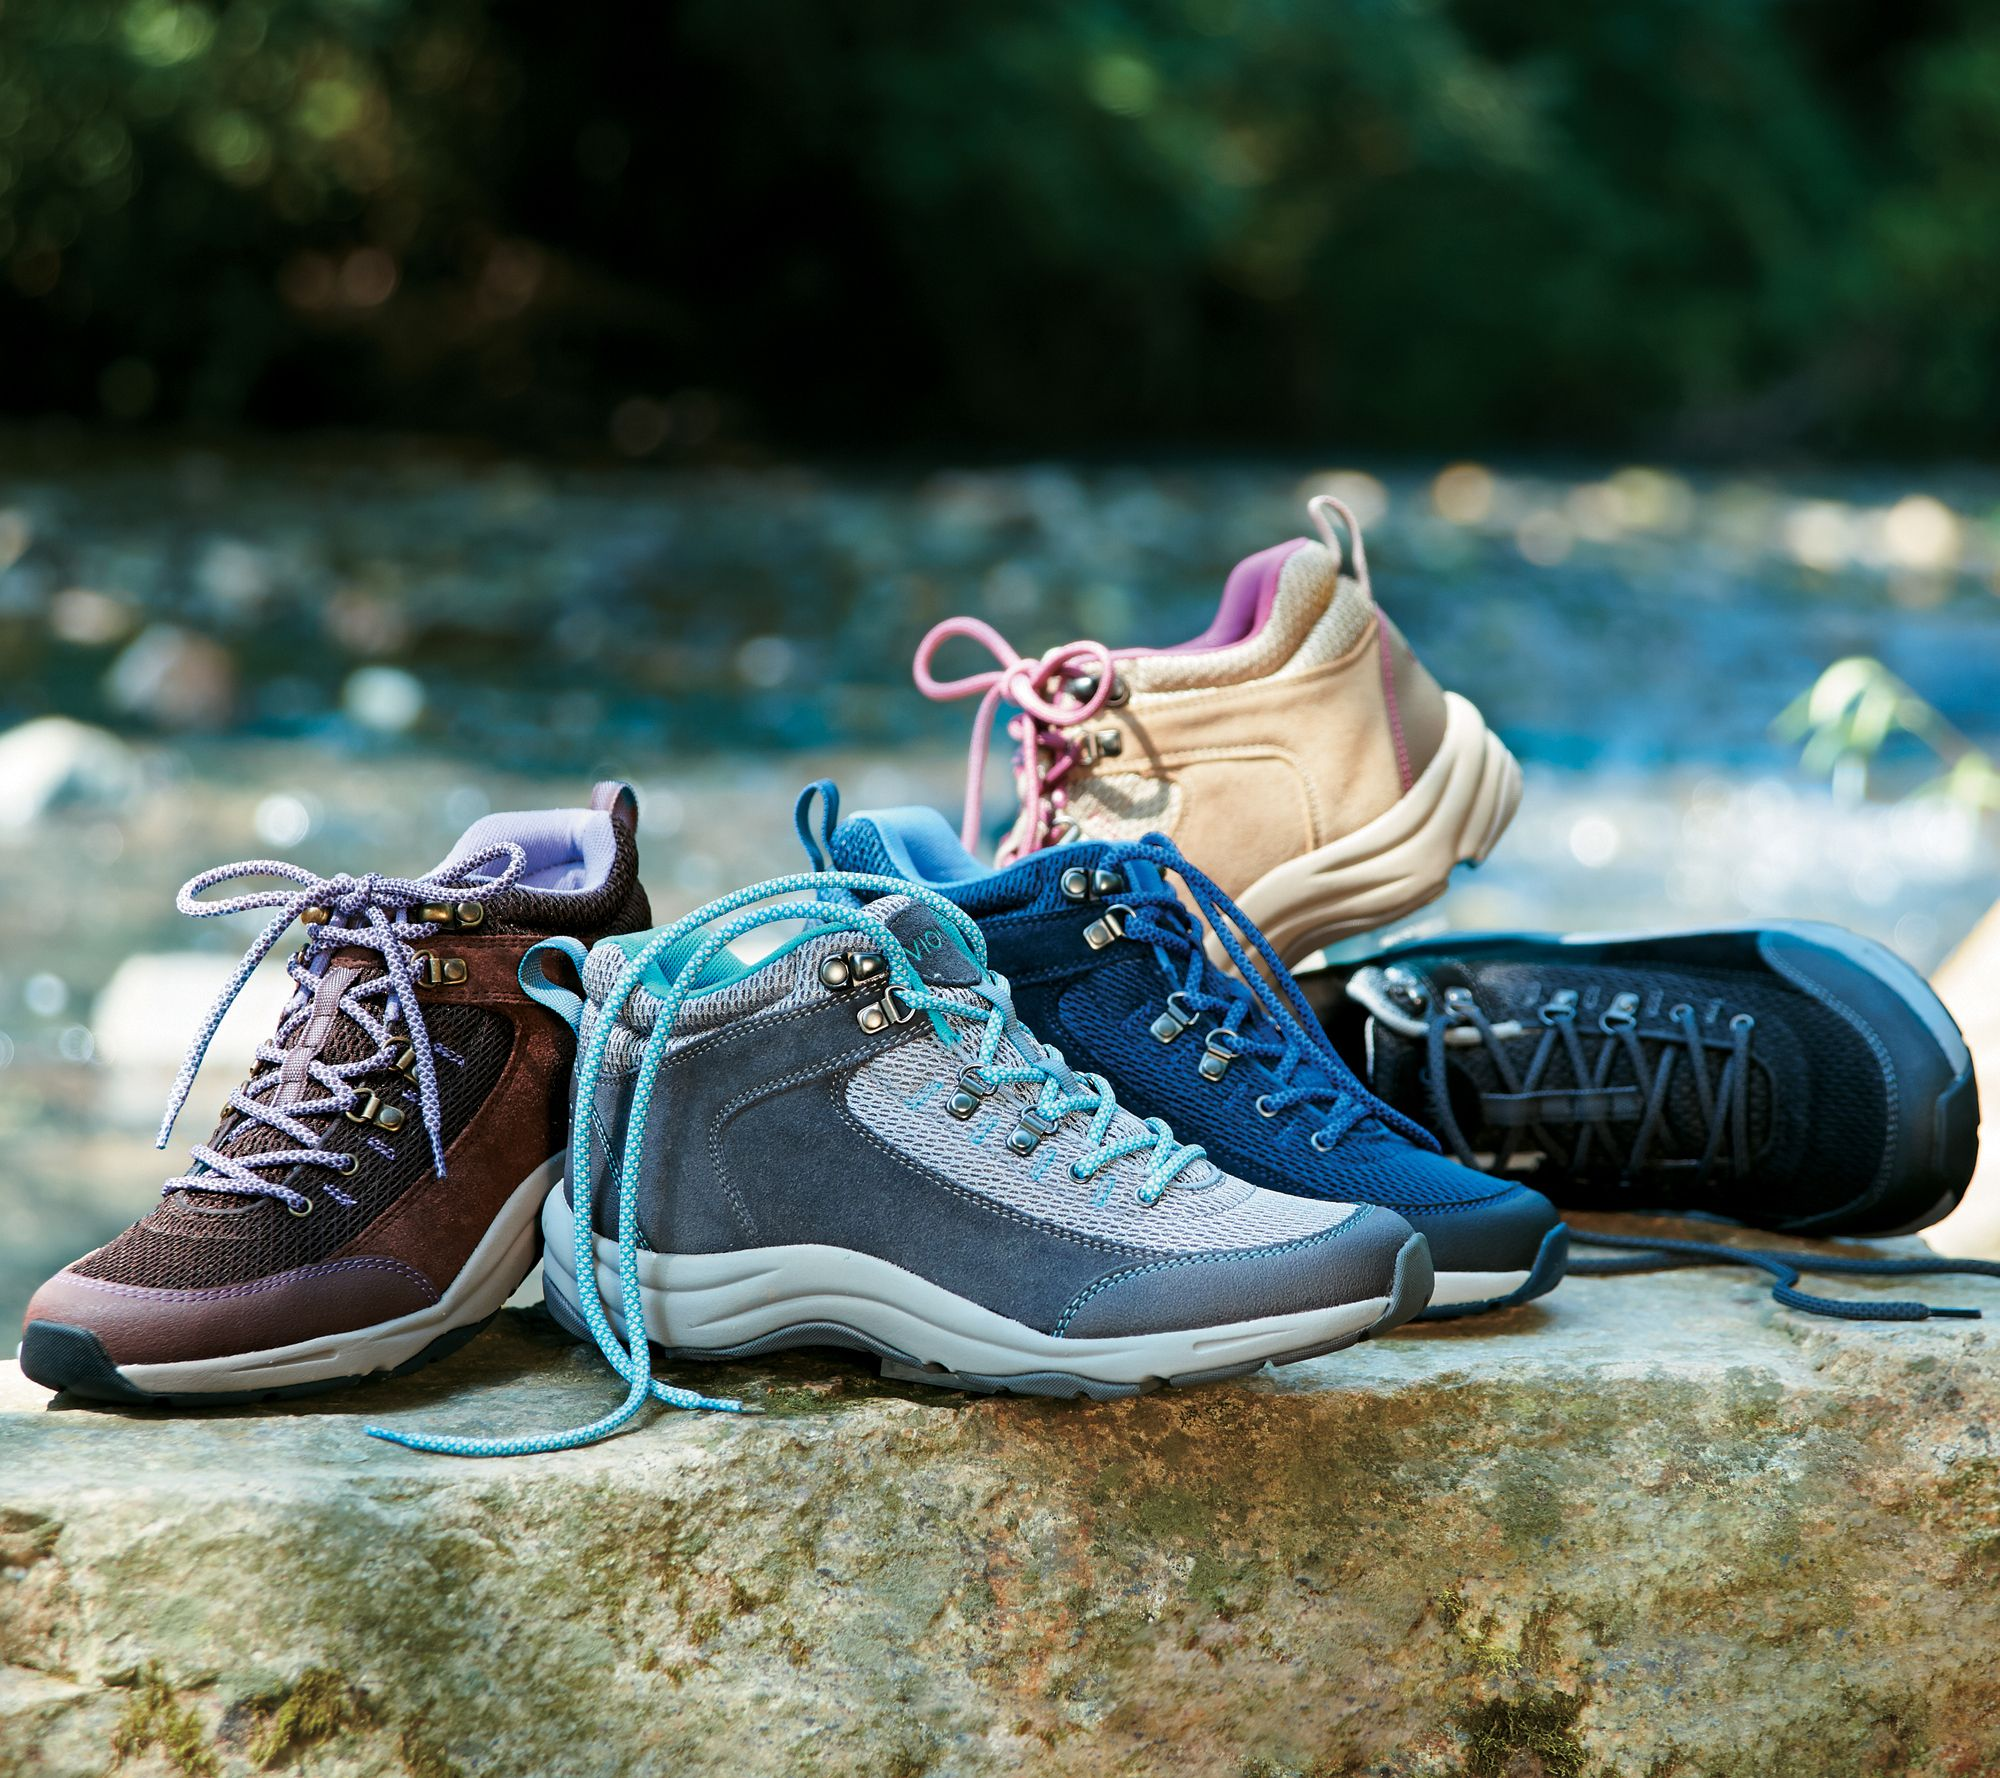 Vionic Water-Resistant Hiking Sneakers - Cypress - Page 1 — QVC.com